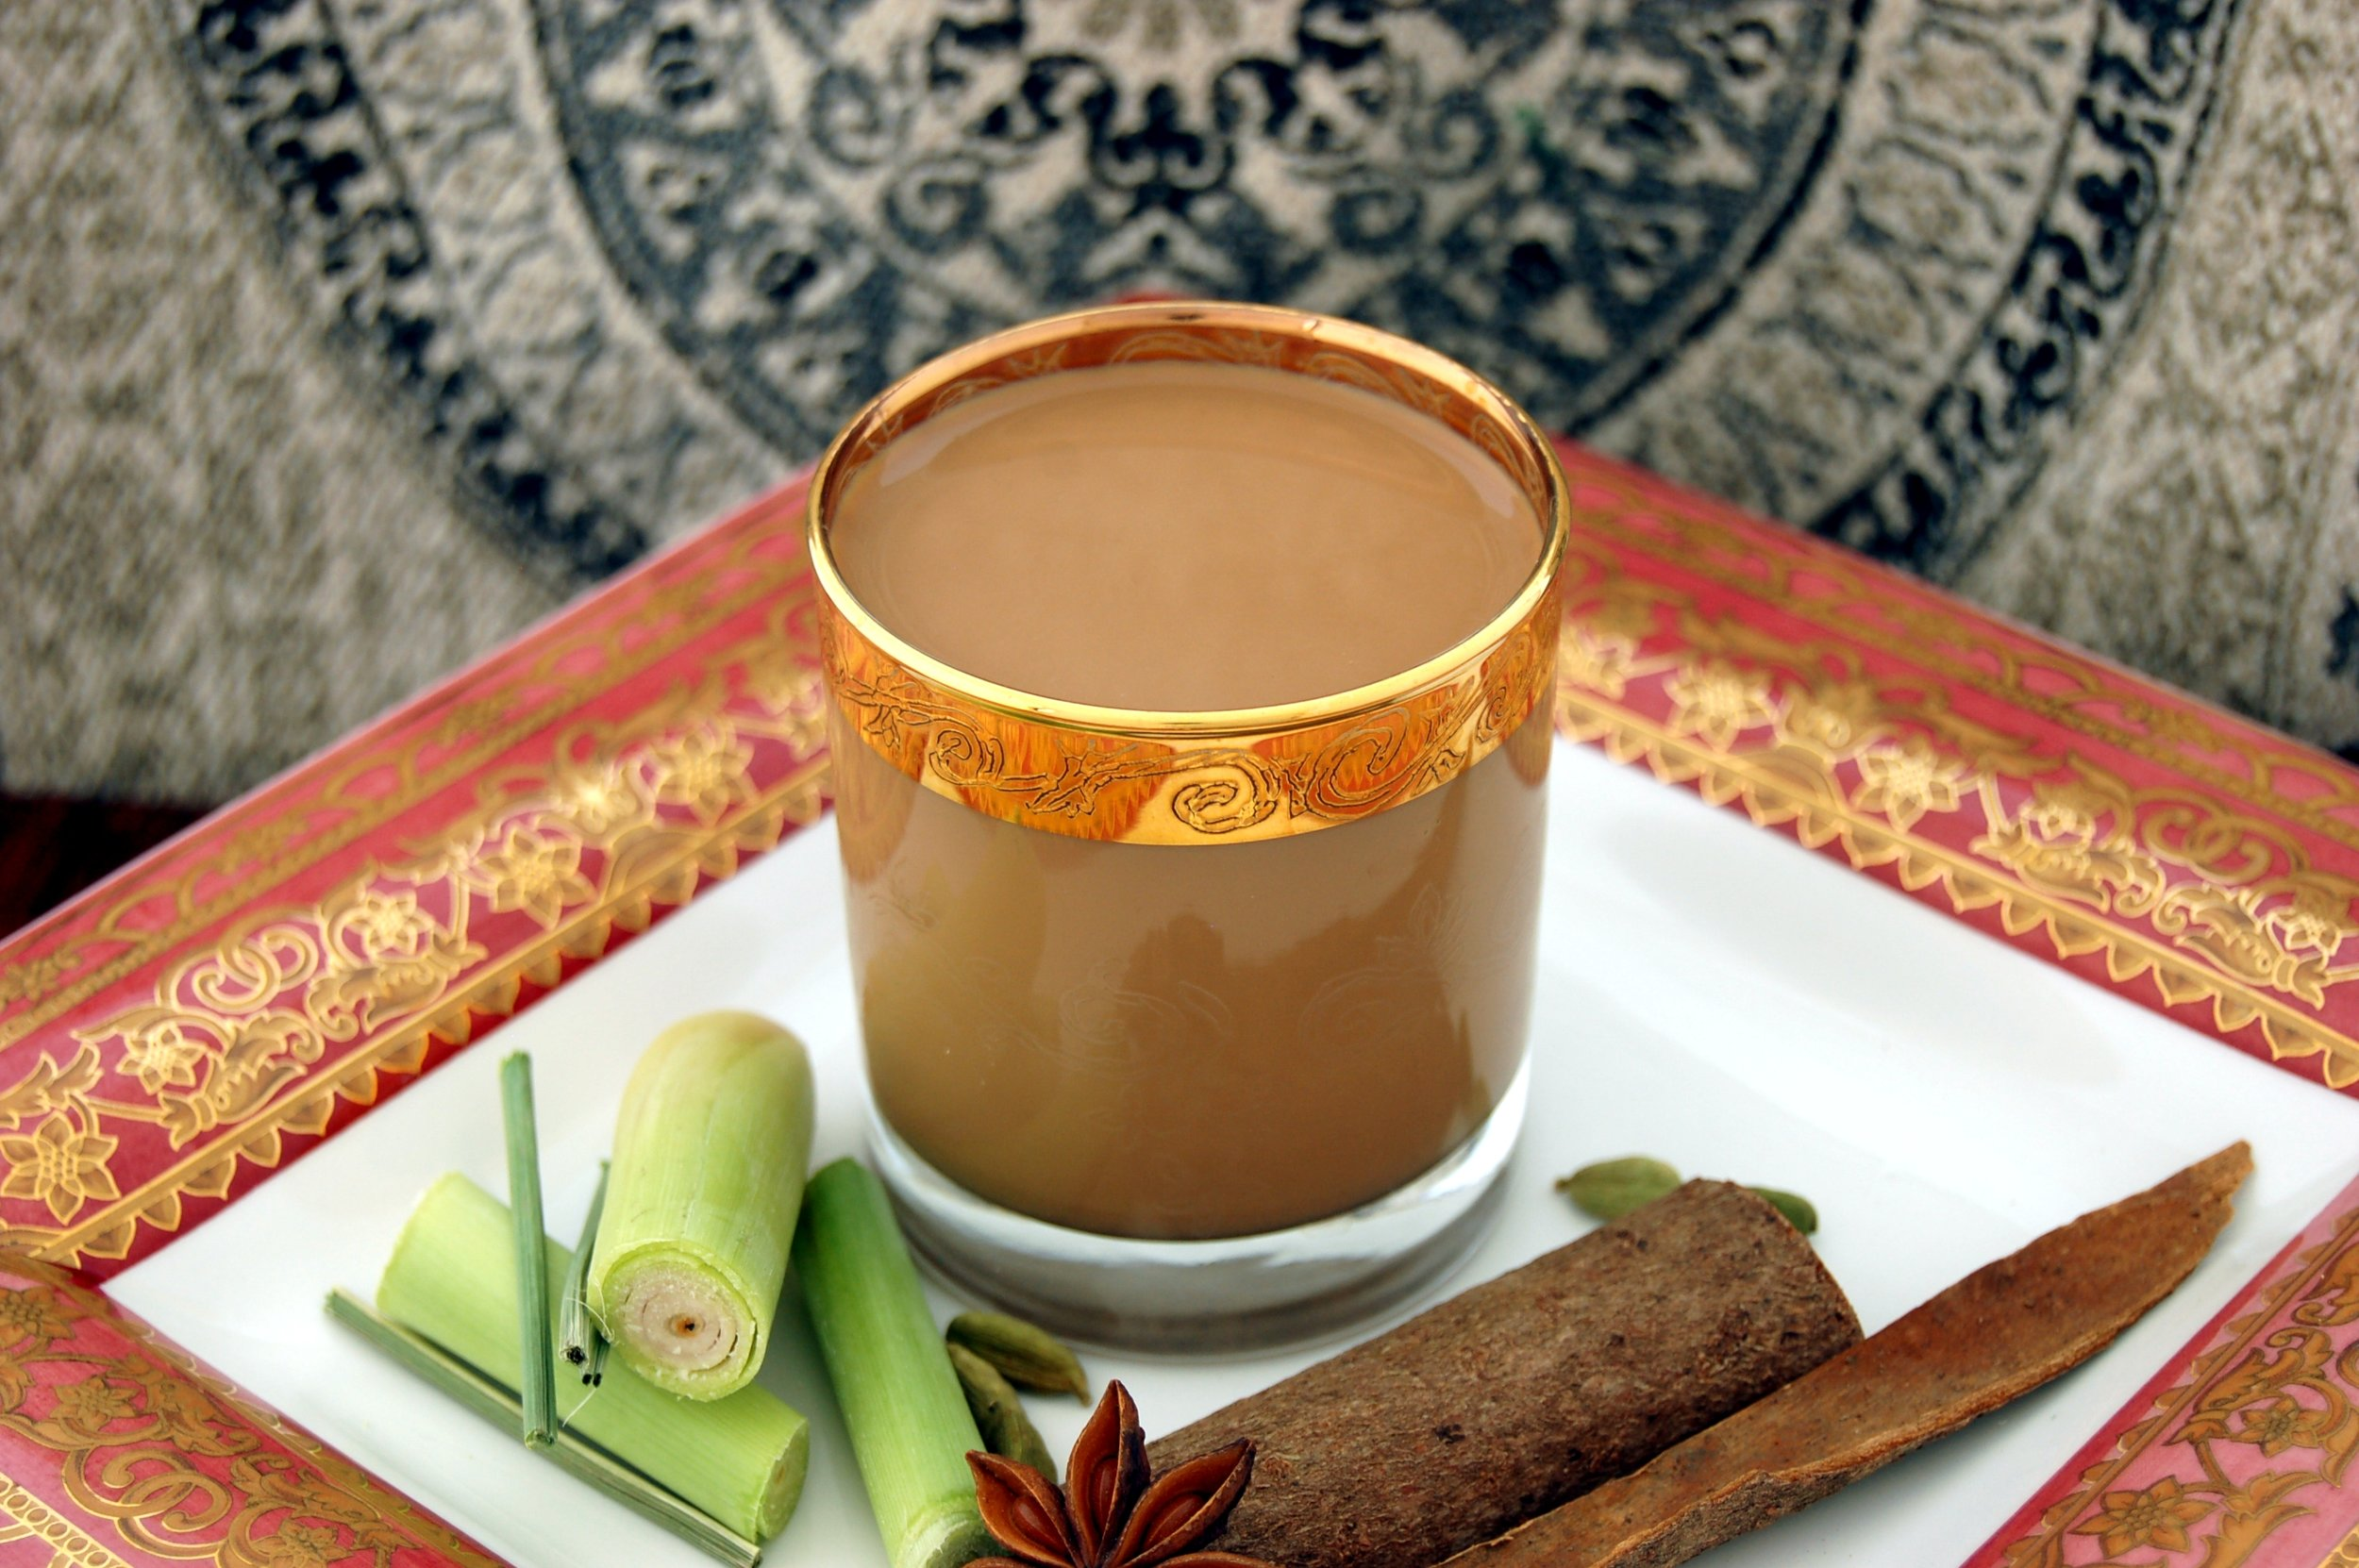 Lemongrass Gingery Masala Chai - COMING SOON!